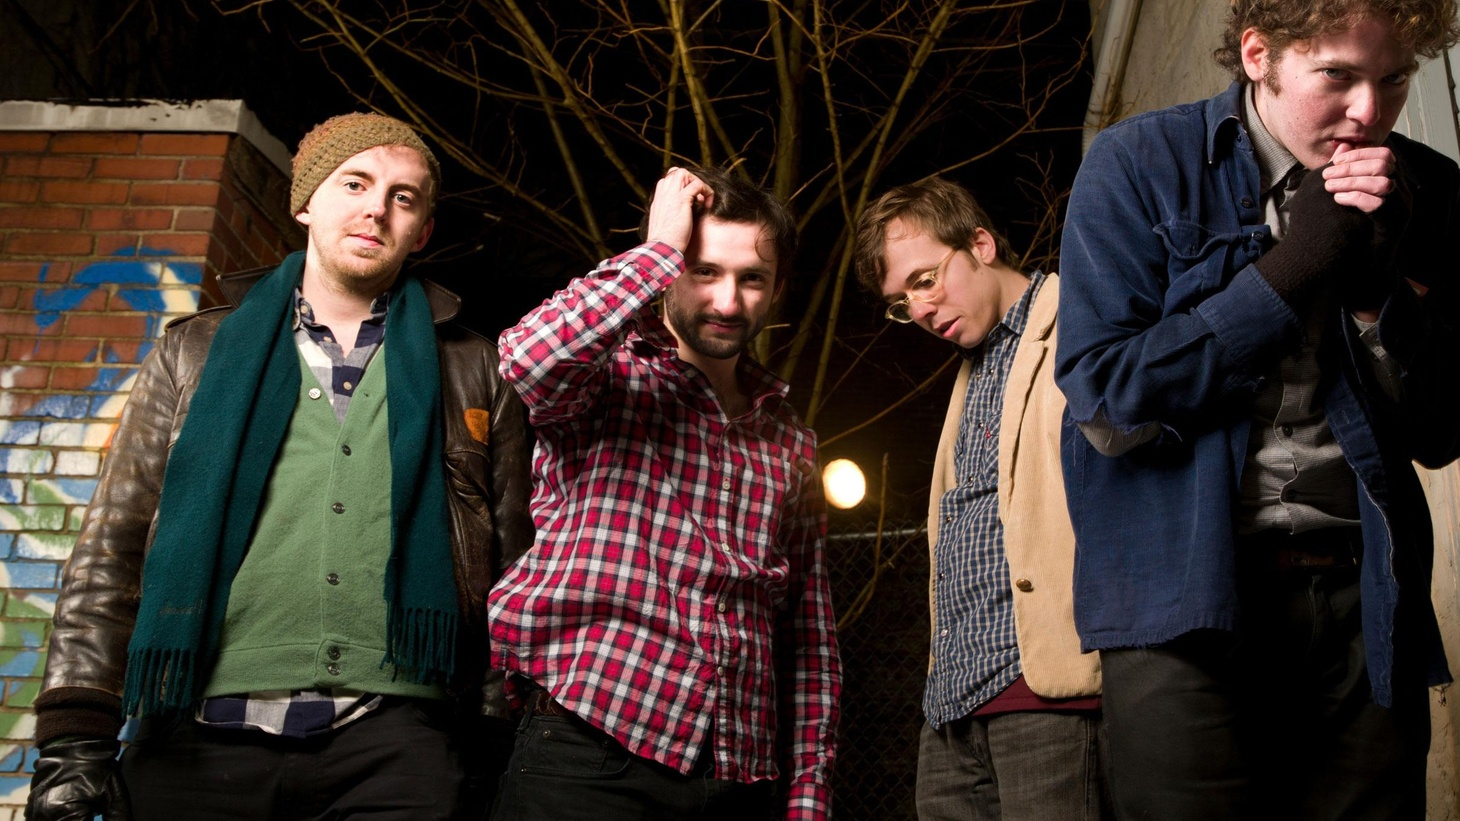 Stationed in Philly, The Powder Kegs are a new band with penchant for pop...